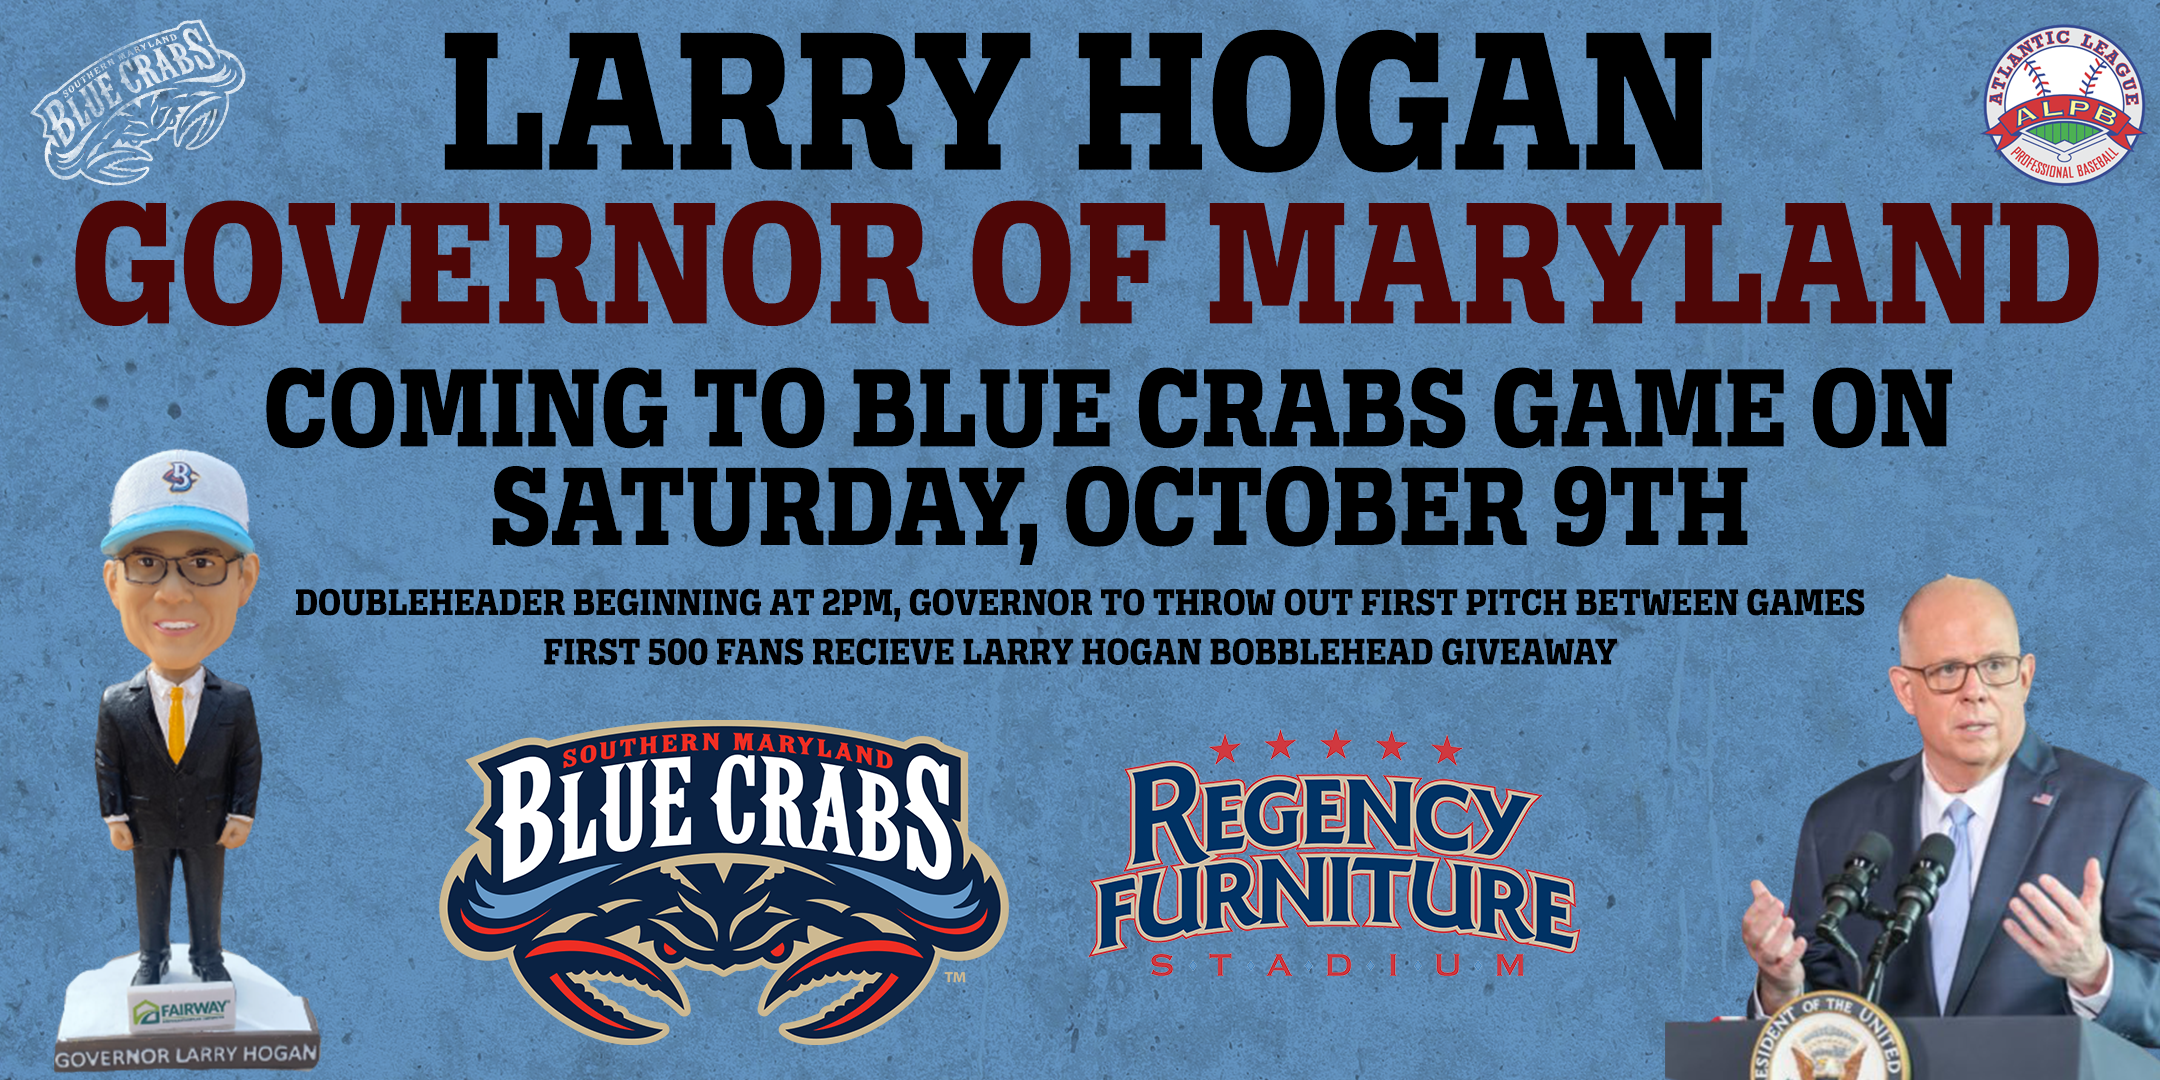 Governor Larry Hogan To Attend Blue Crabs Game